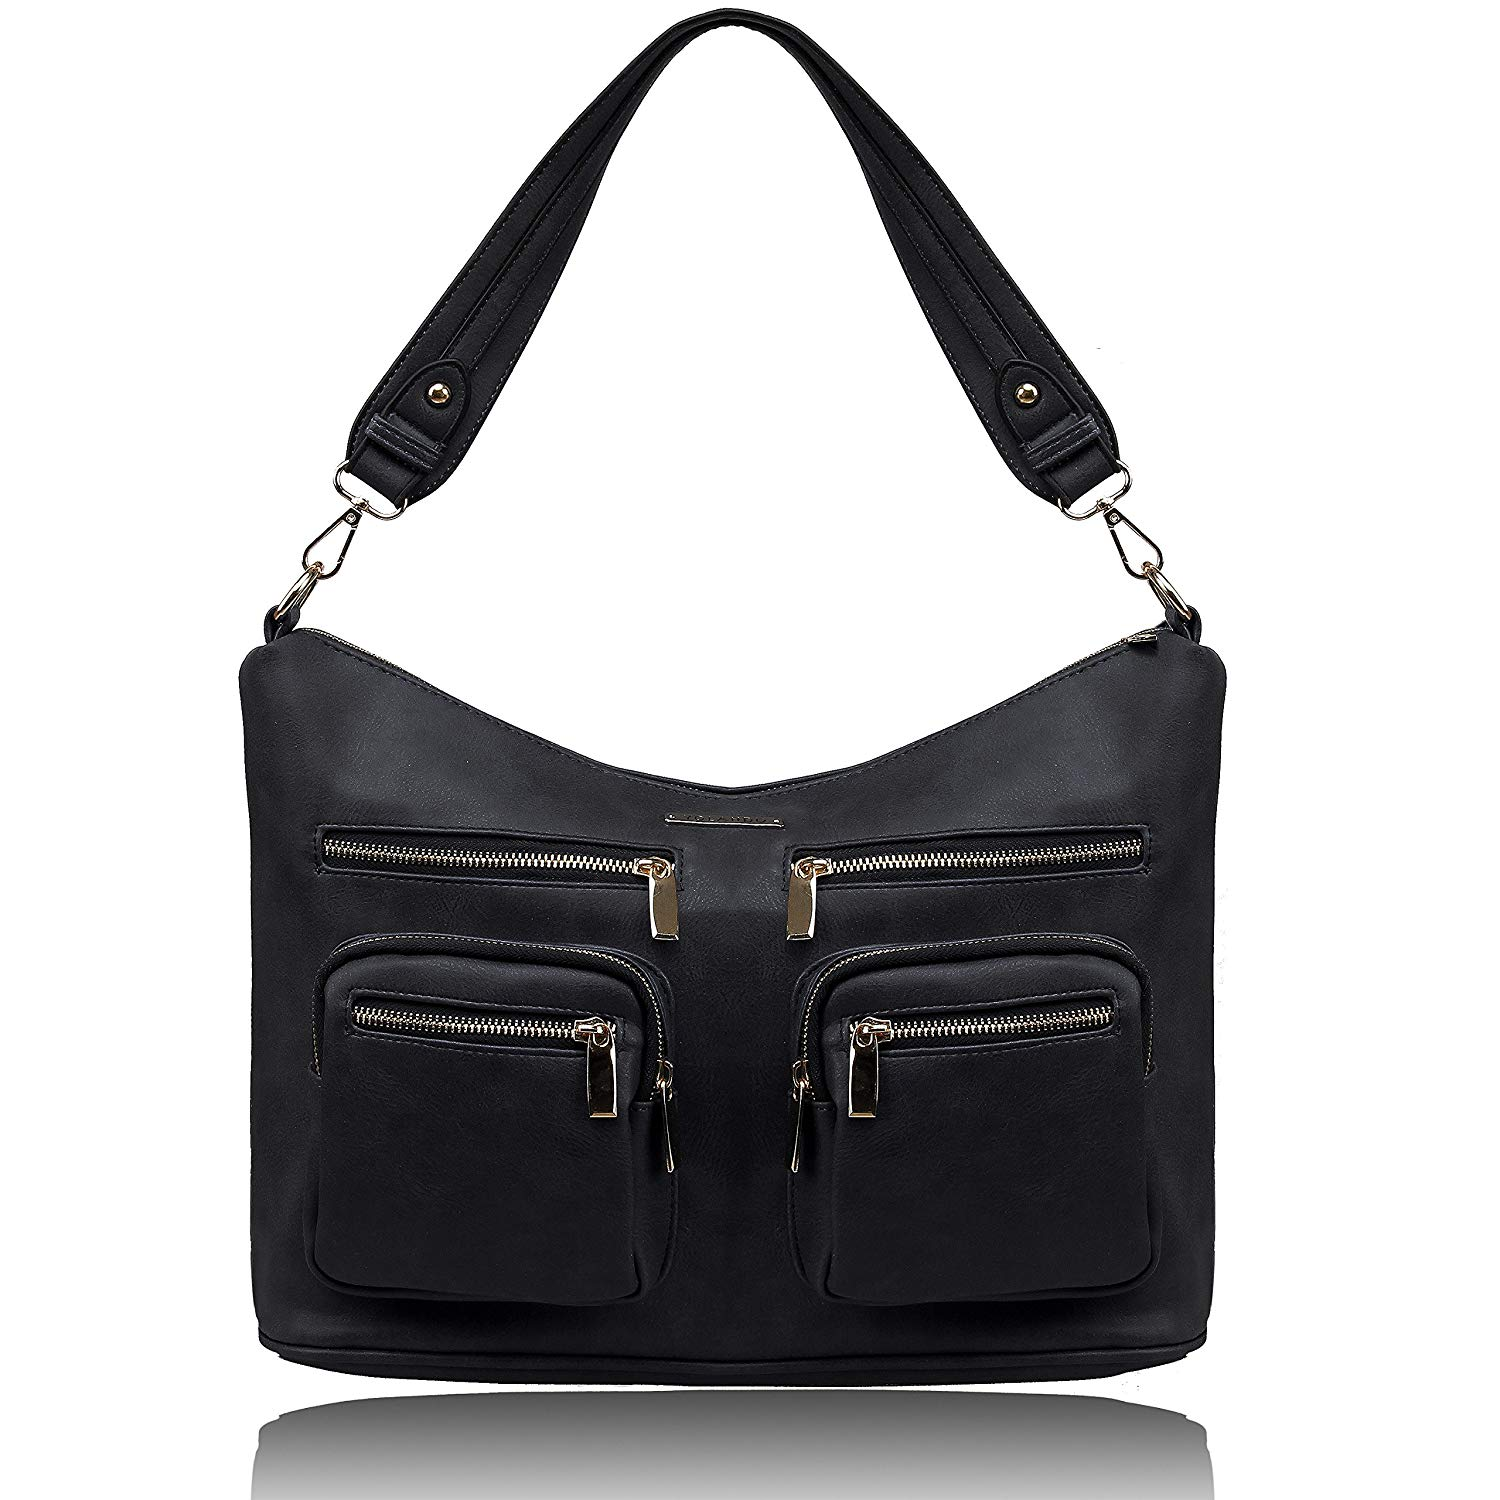 5306daa37f Get Quotations · YOLANDO Womens Vegan PU Leather Slouchy Hobo Tote Bag with  Zip Closure and Zippered Pockets